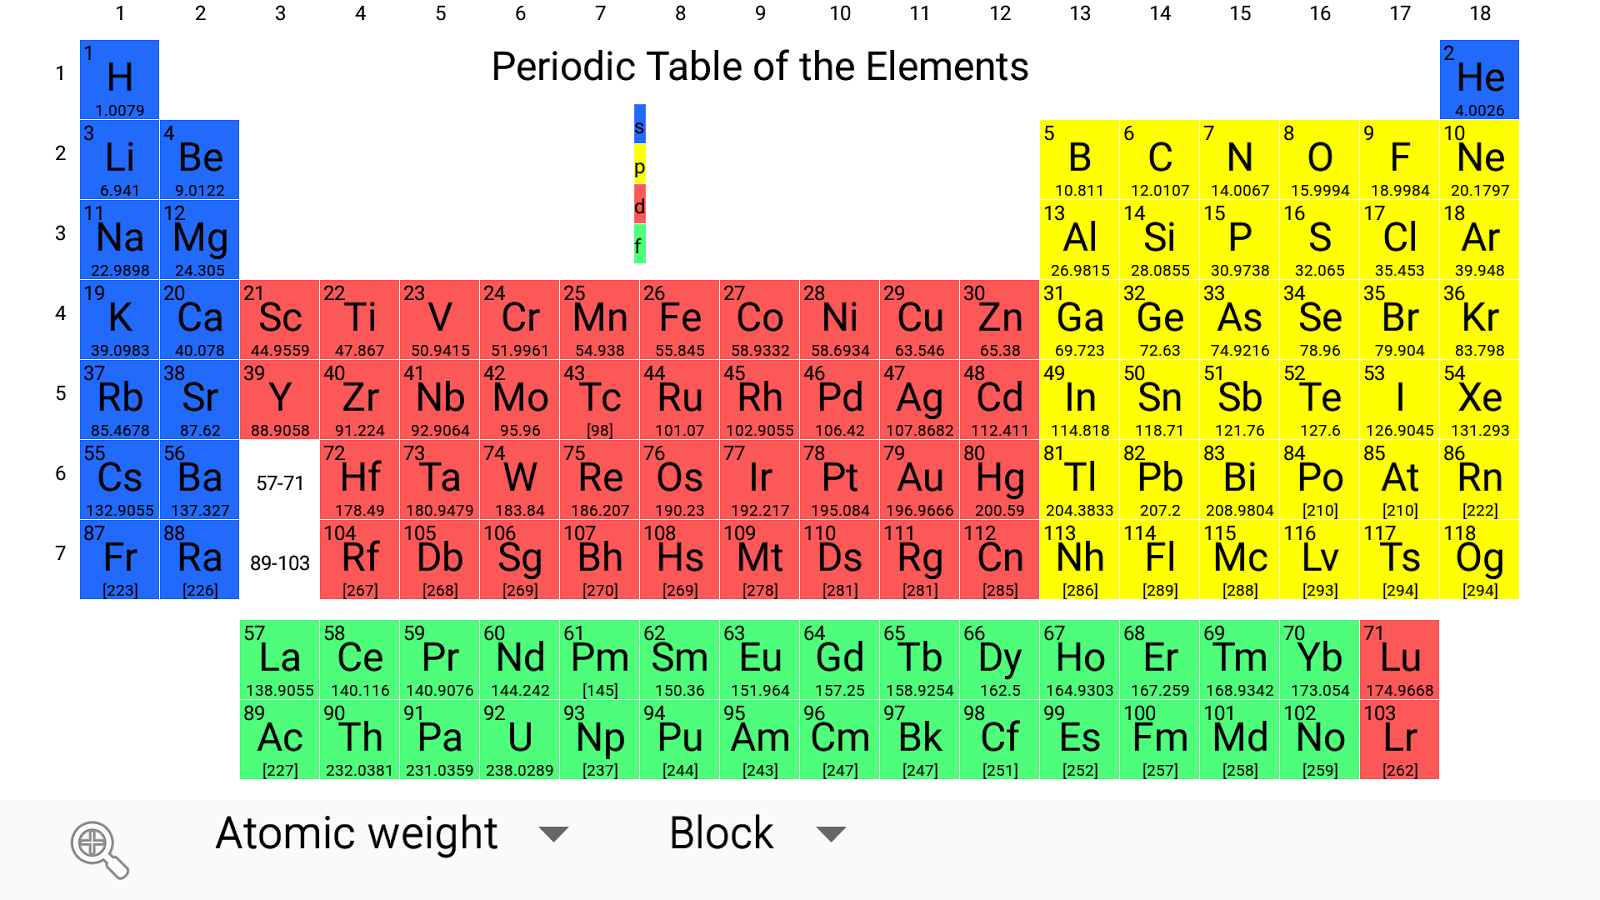 Periodic table chemistry elements 2018 android apps on google play periodic table chemistry elements 2018 screenshot urtaz Choice Image